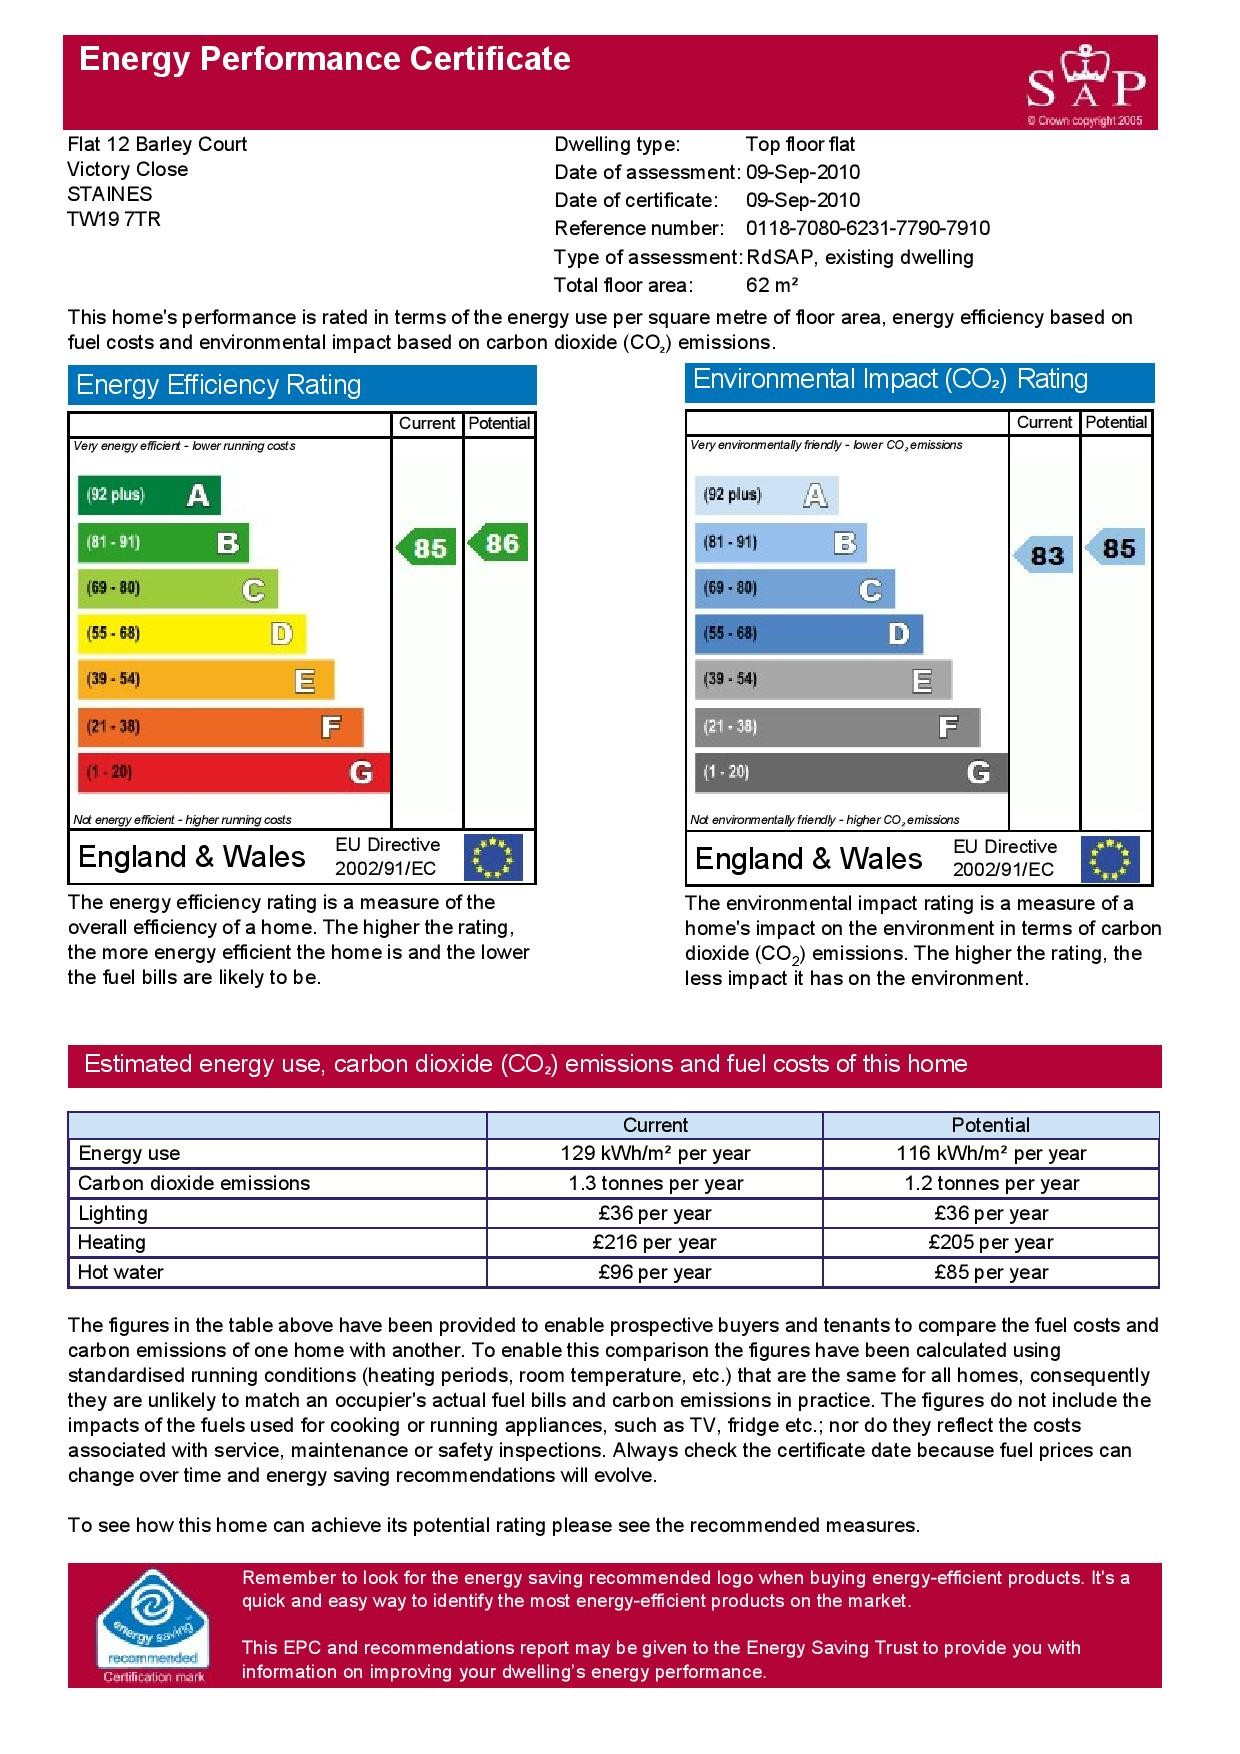 EPC Graph for 12 Barley Court, Victory Close, Stanwell, Middlesex TW19 7TR